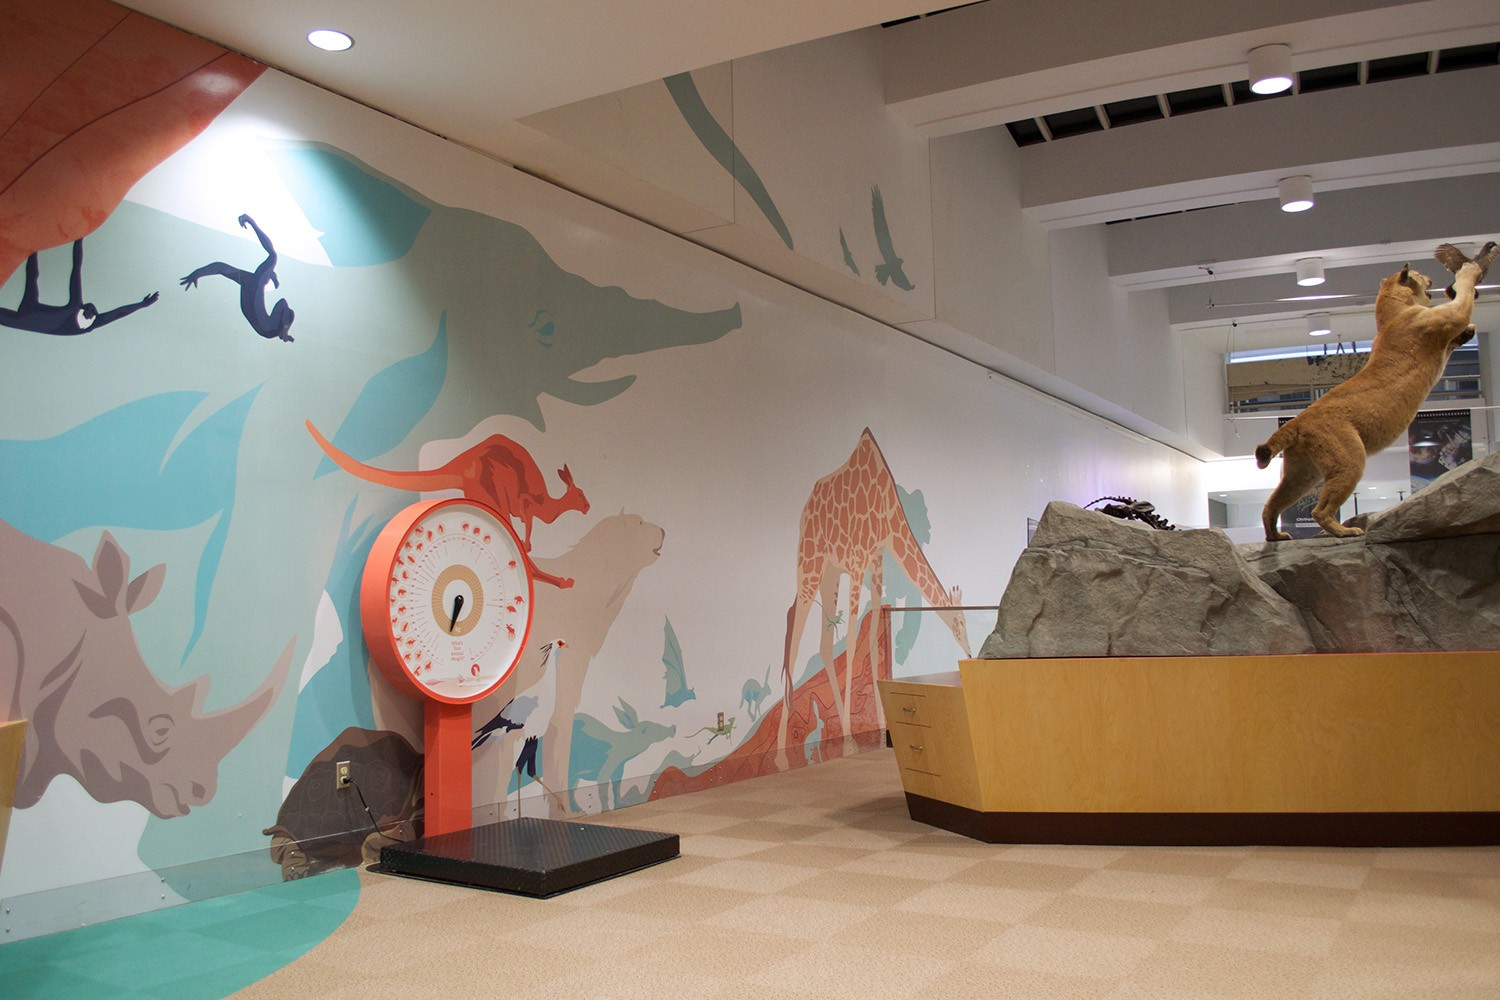 Animal mural I illustrated, at the entrance of the gallery.